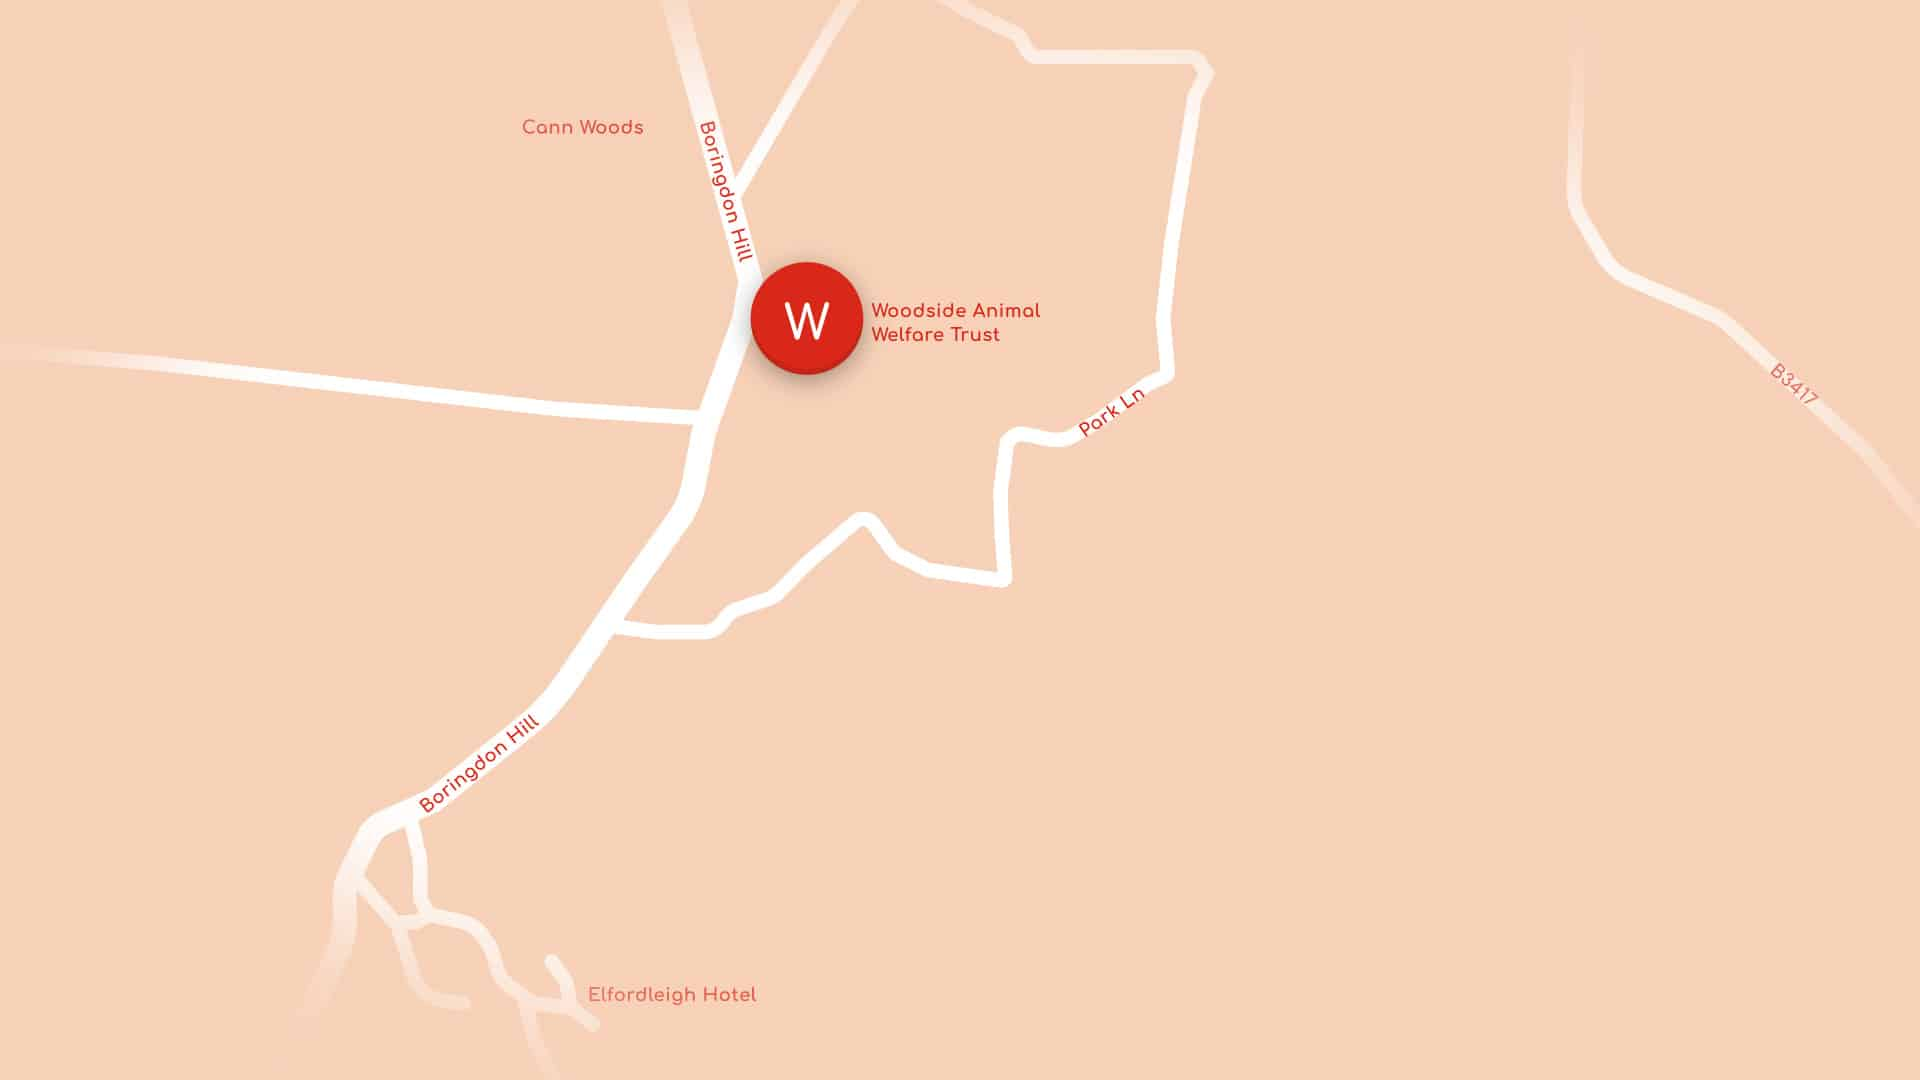 Map showing main Woodside location